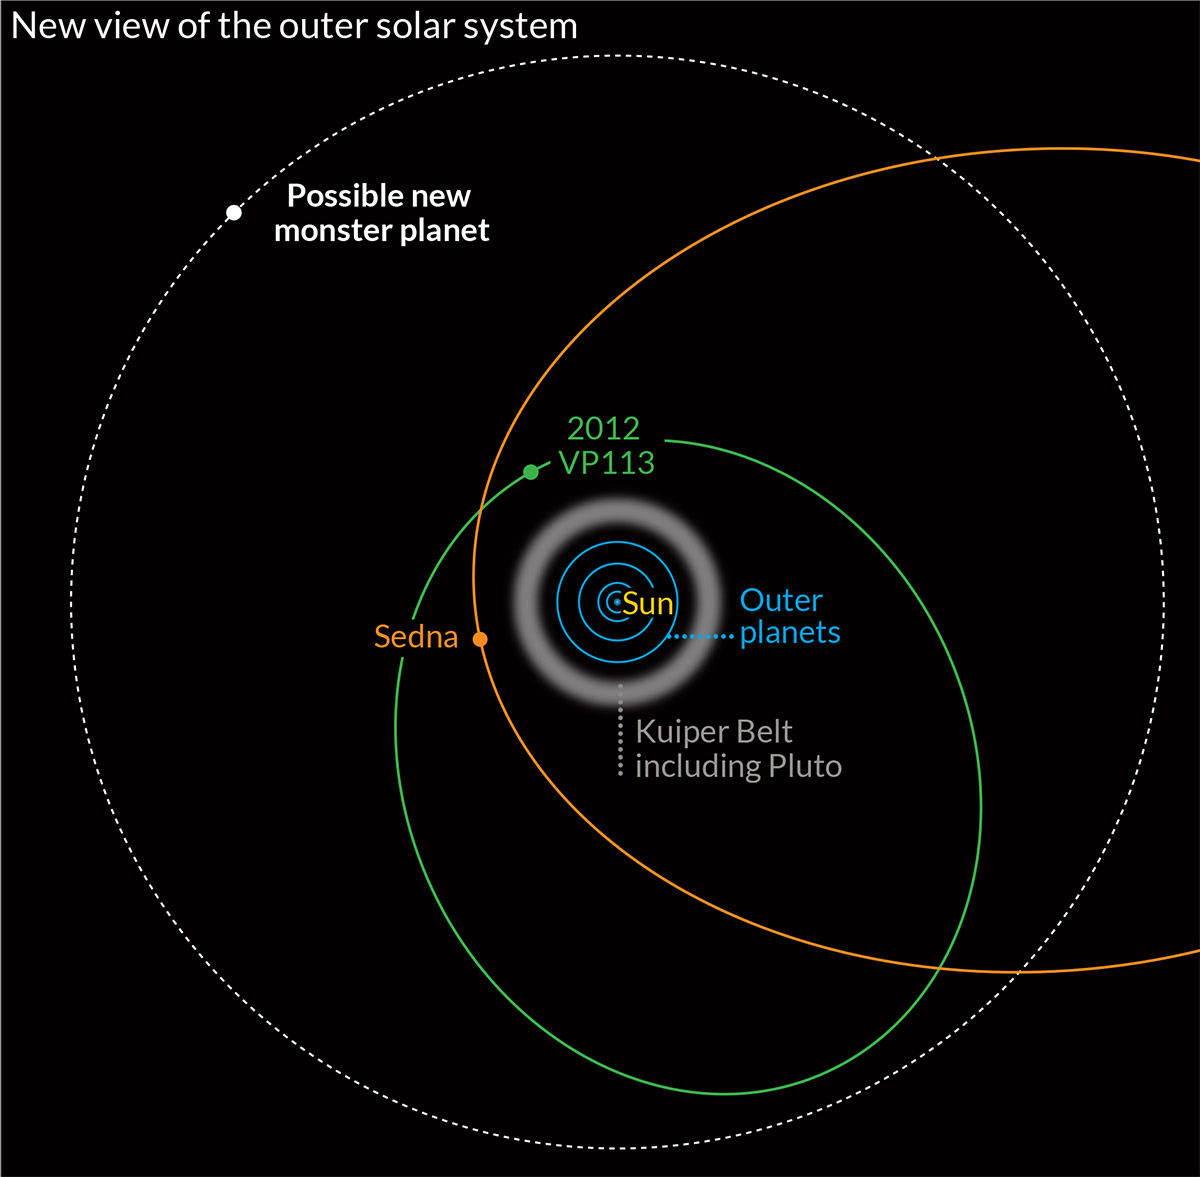 Sun Solar System Diagram Electrical Work Wiring Diagram - Accurate map of the solar system